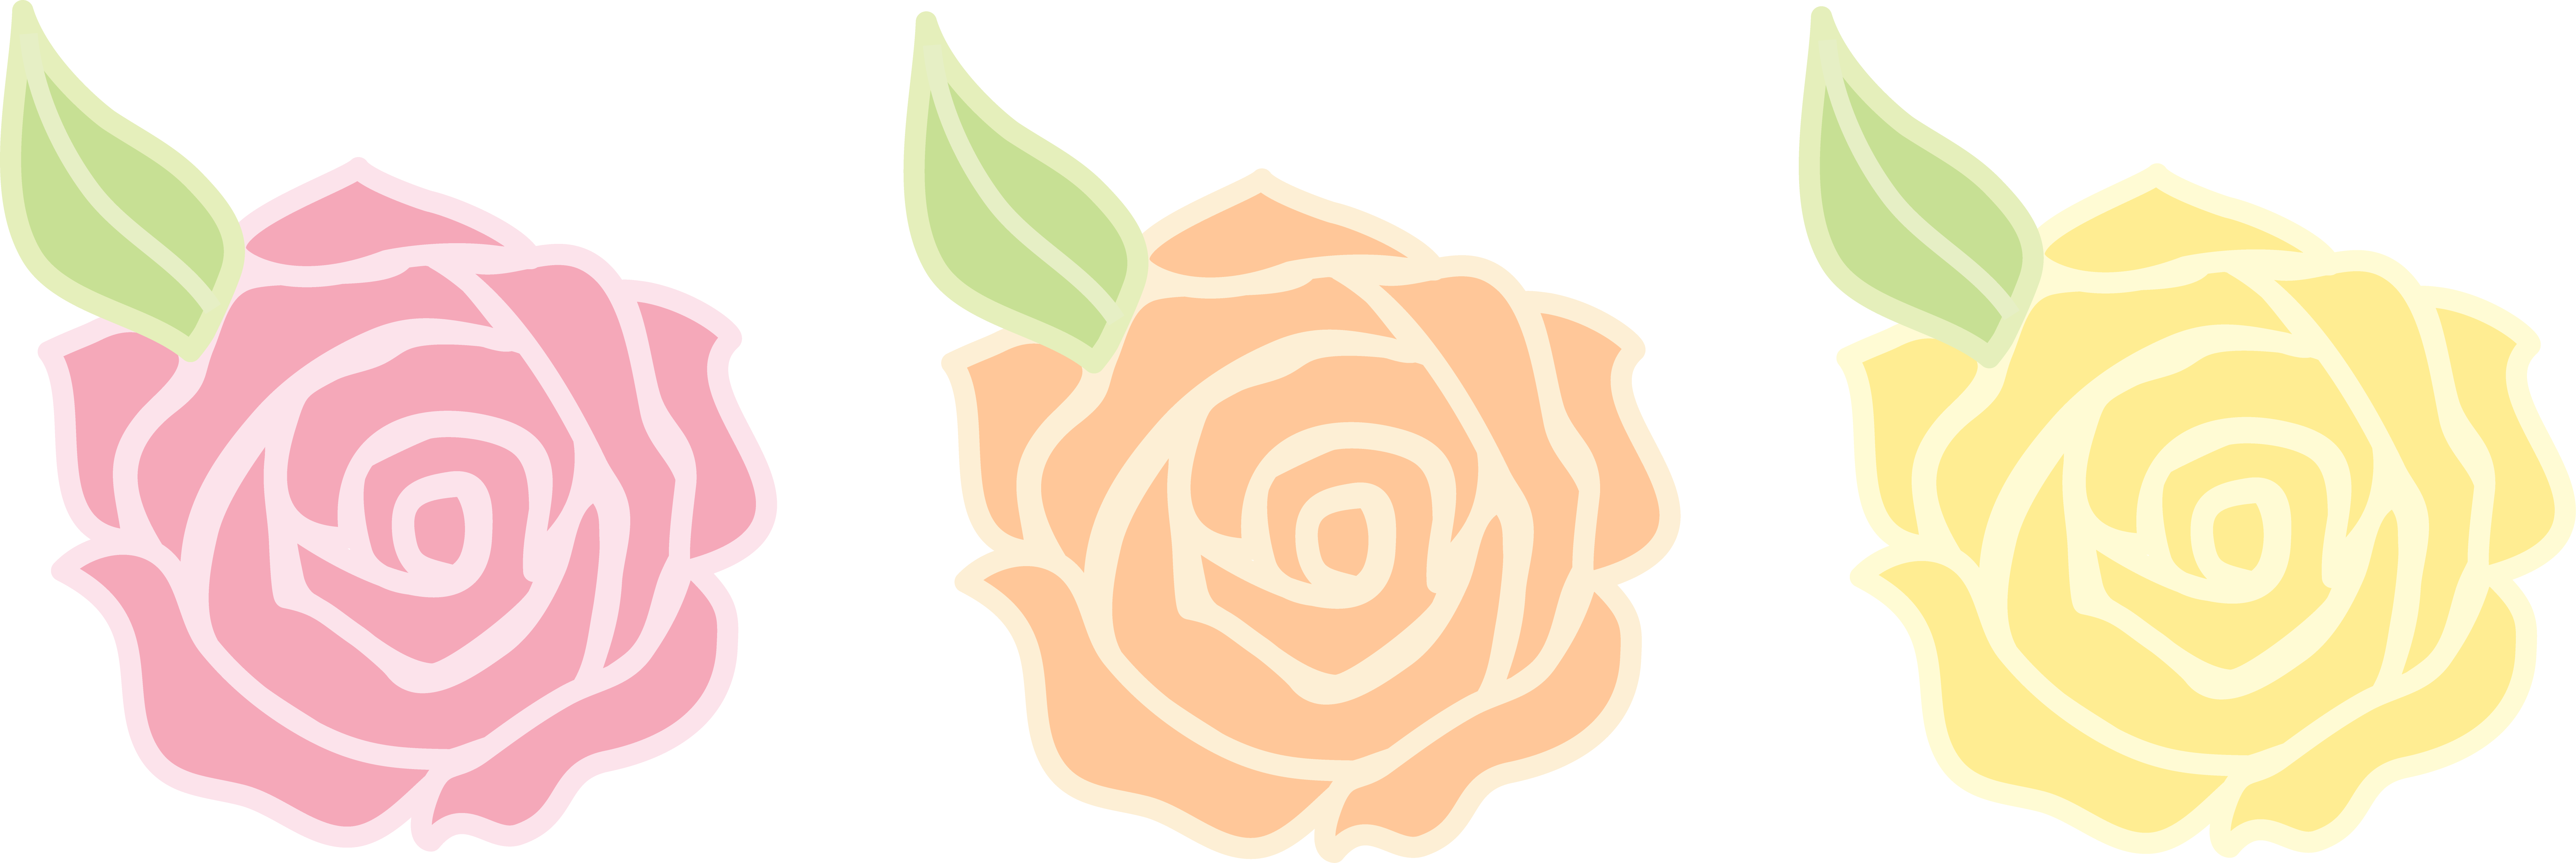 Flower clipart pastel clip art Pink Orange and Yellow Roses - Free Clip Art clip art